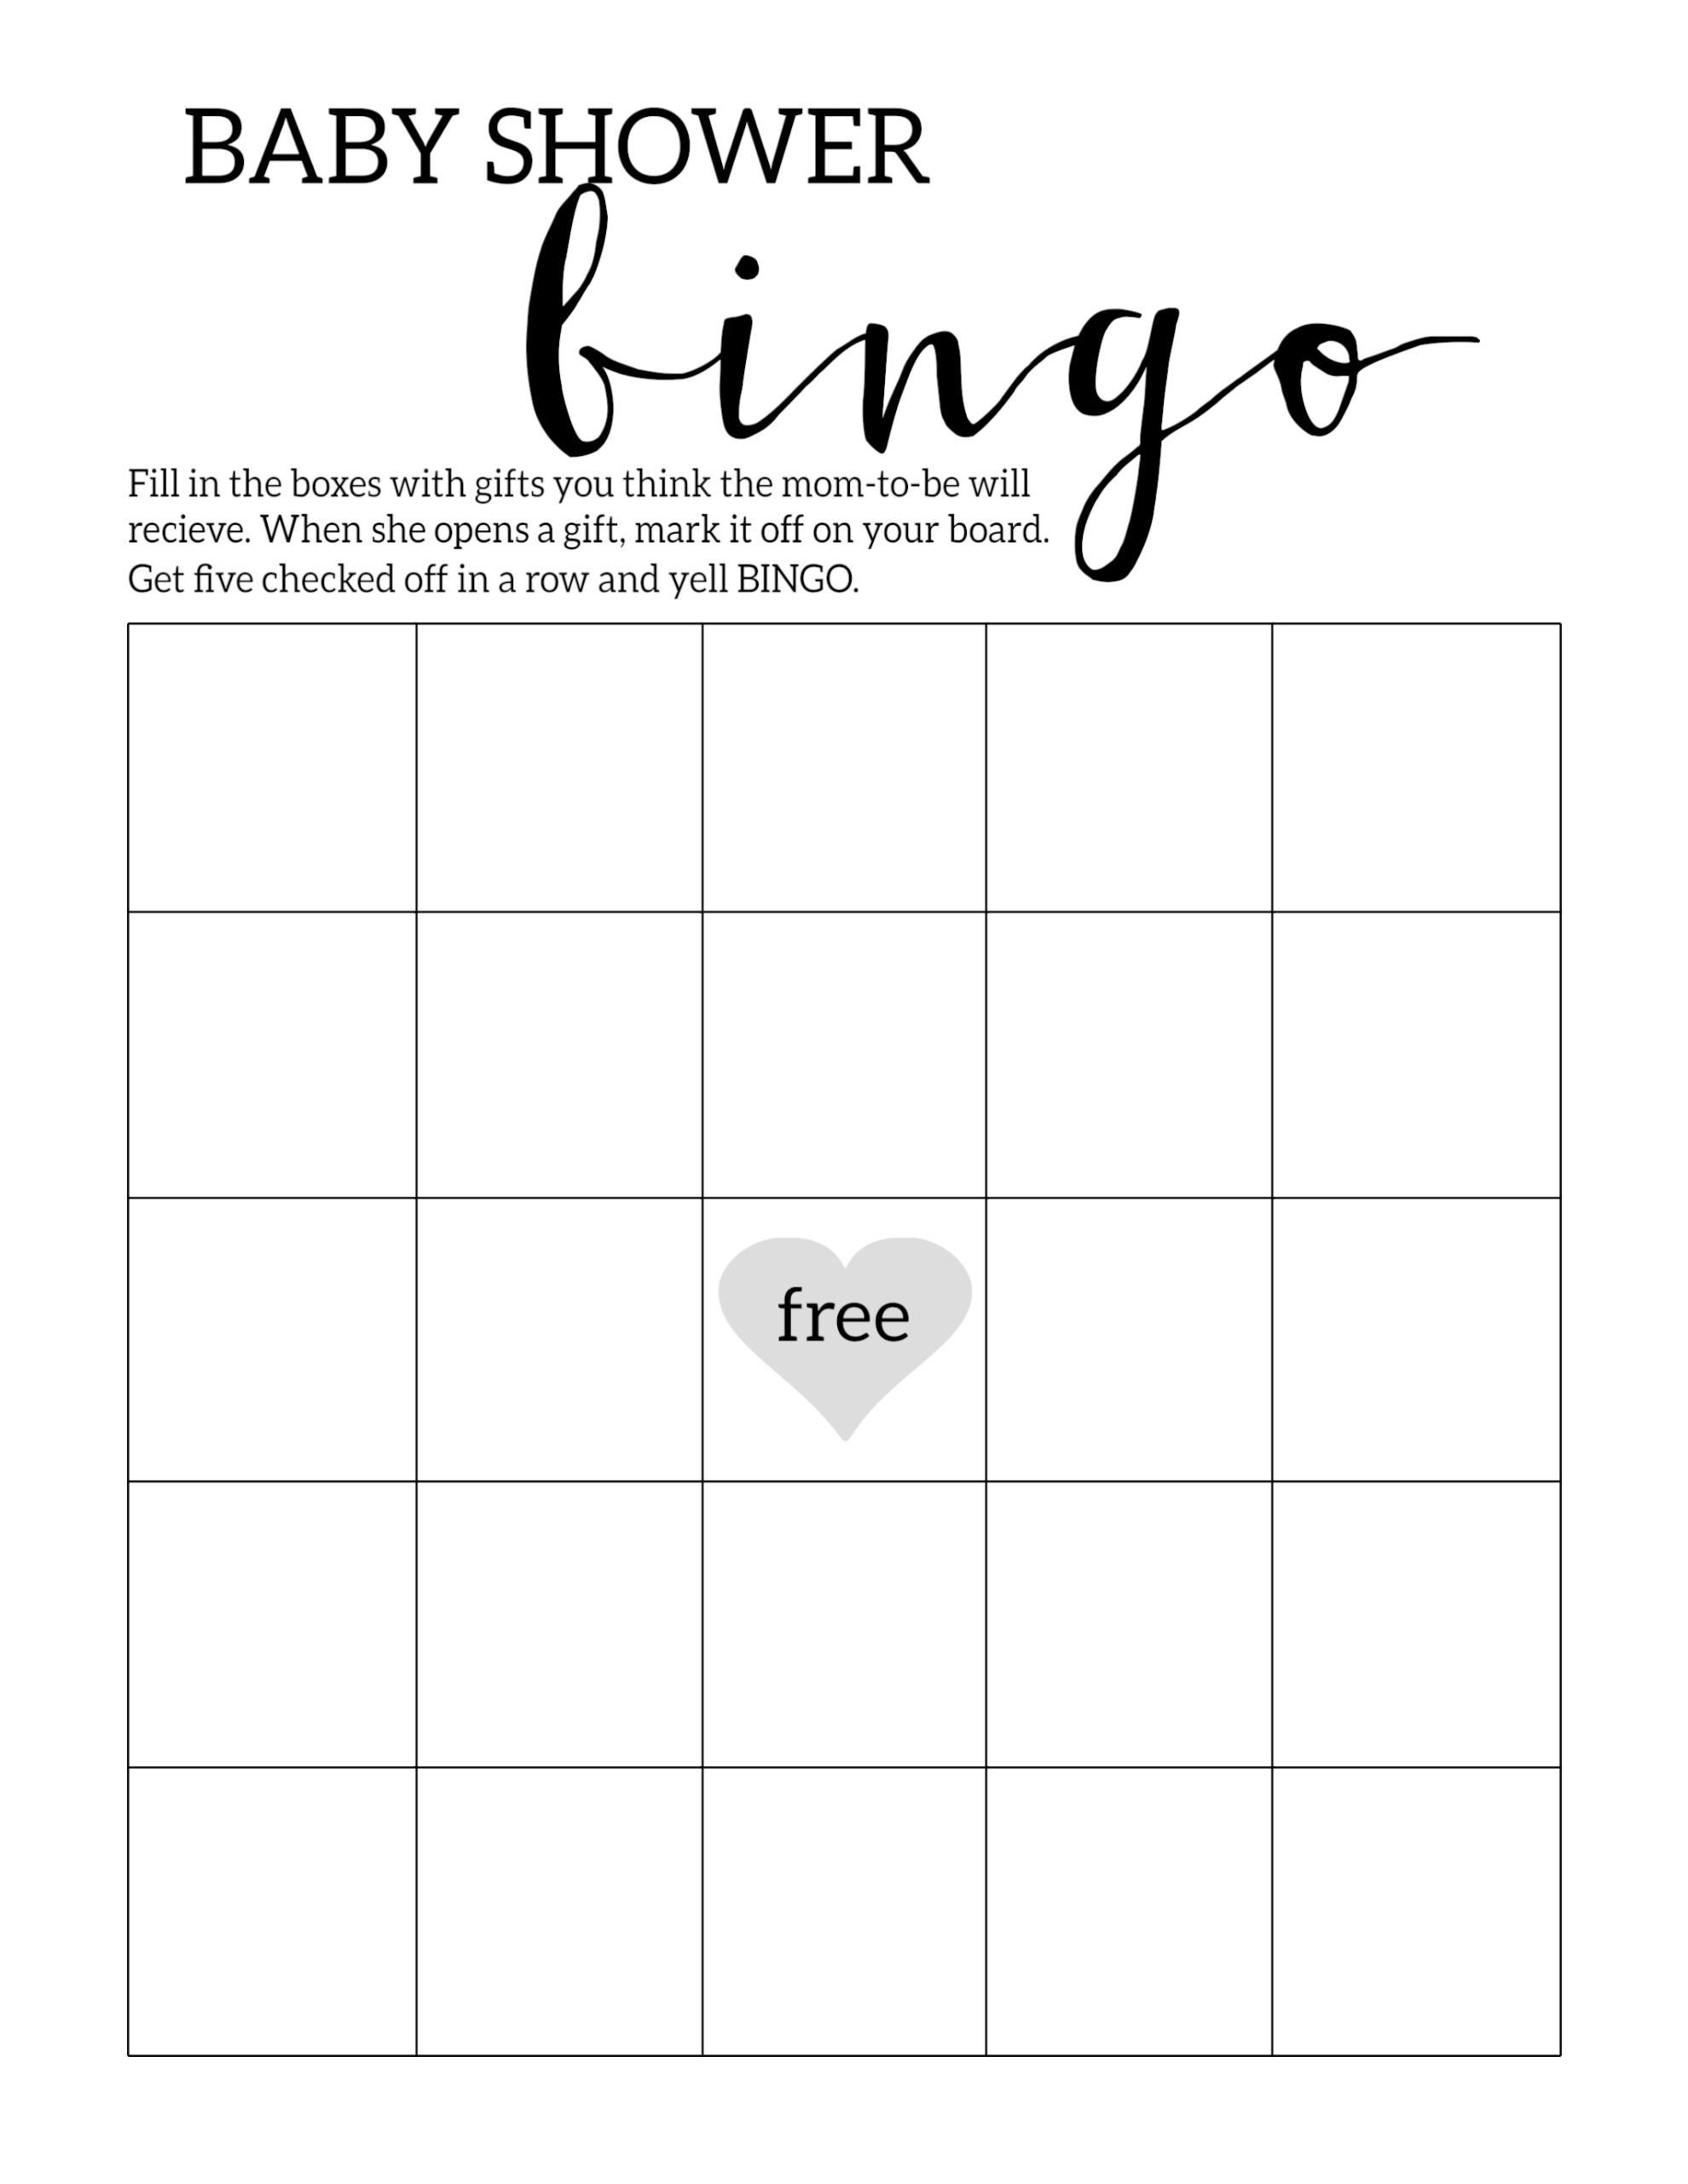 Baby Shower Bingo Template Baby Shower Bingo Printable Cards Template Paper Trail